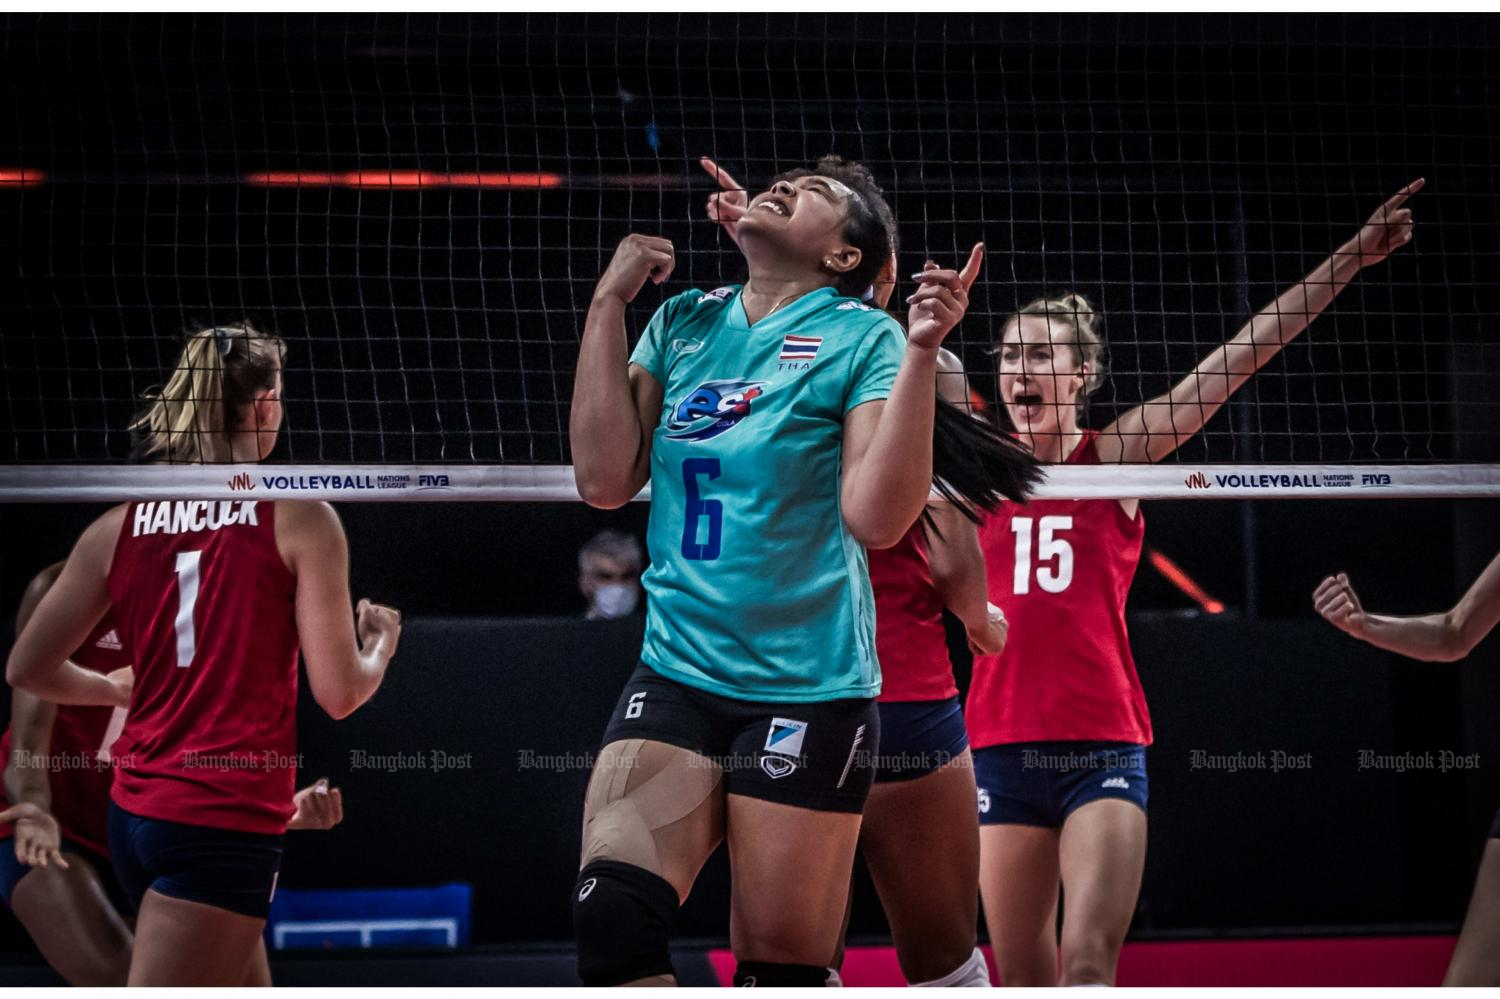 Thailand's Onuma Sittirak, No.6, reacts as US players celebrate a point during their Nations League match in Italy on Wednesday.(FIVB photo)